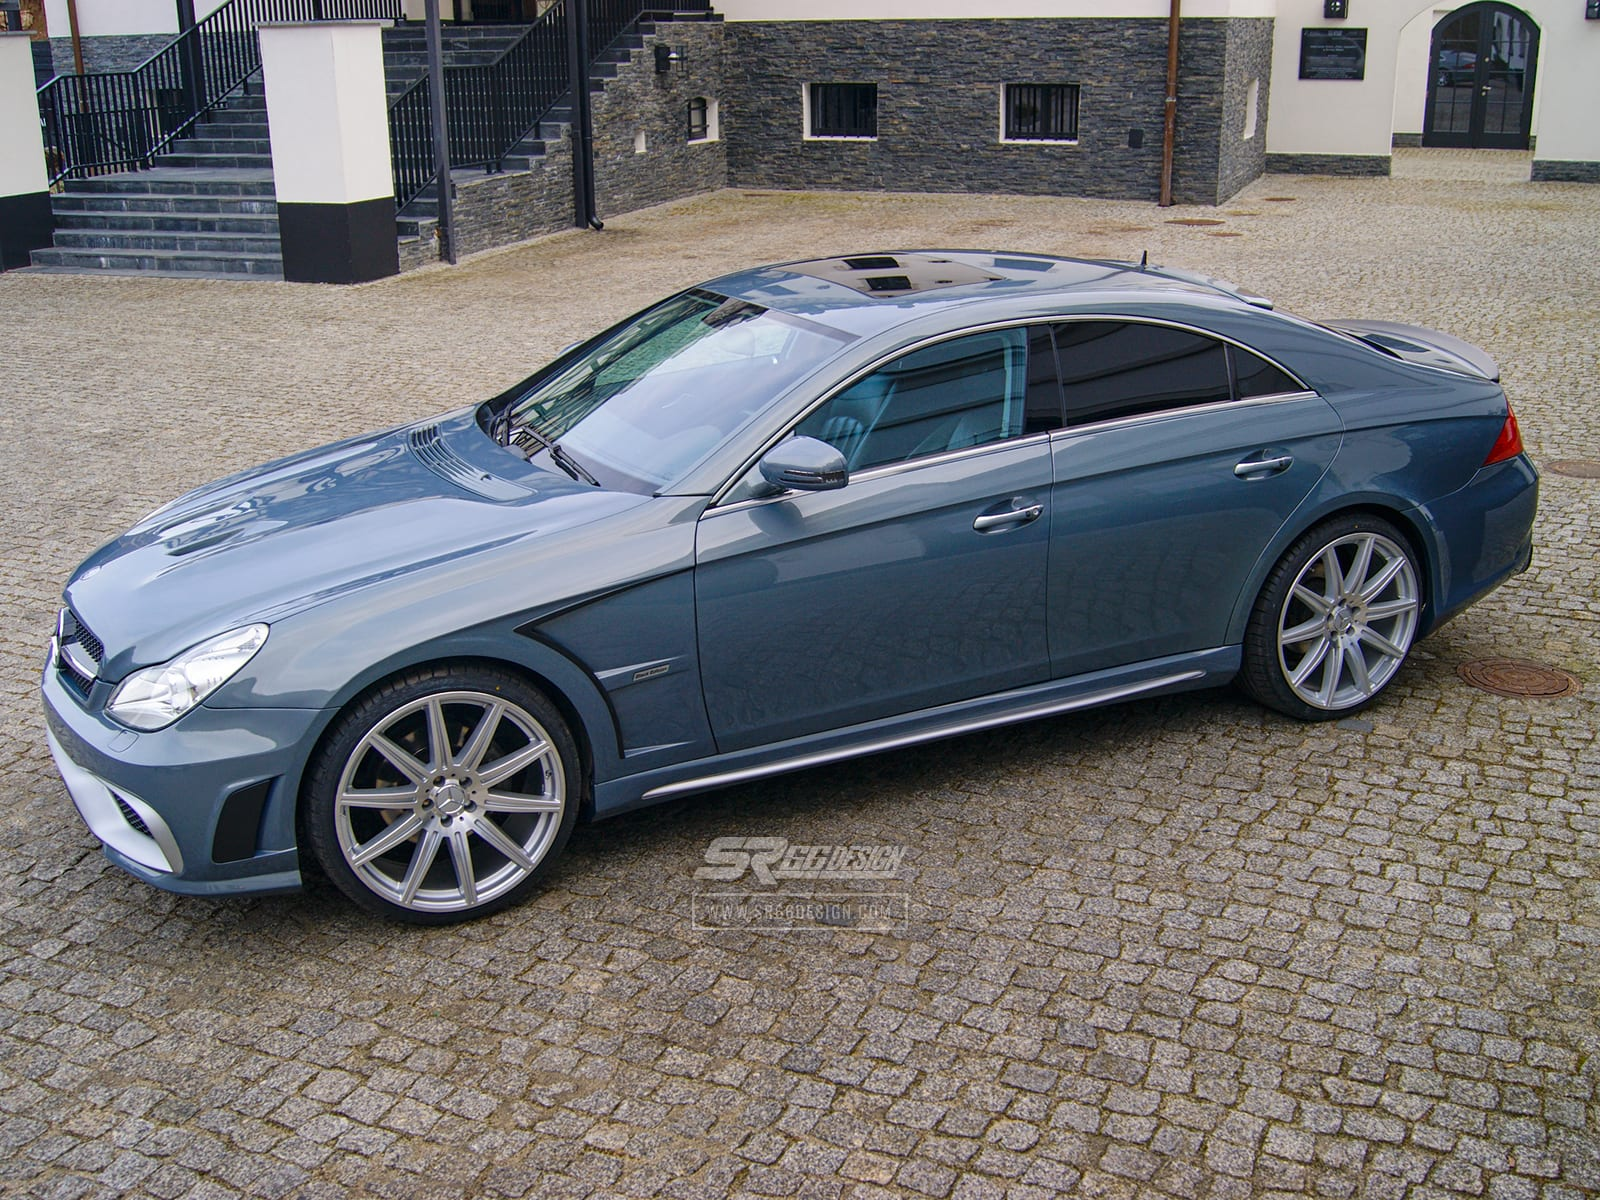 Mercedes-Benz CLS W219 SR66 body kit